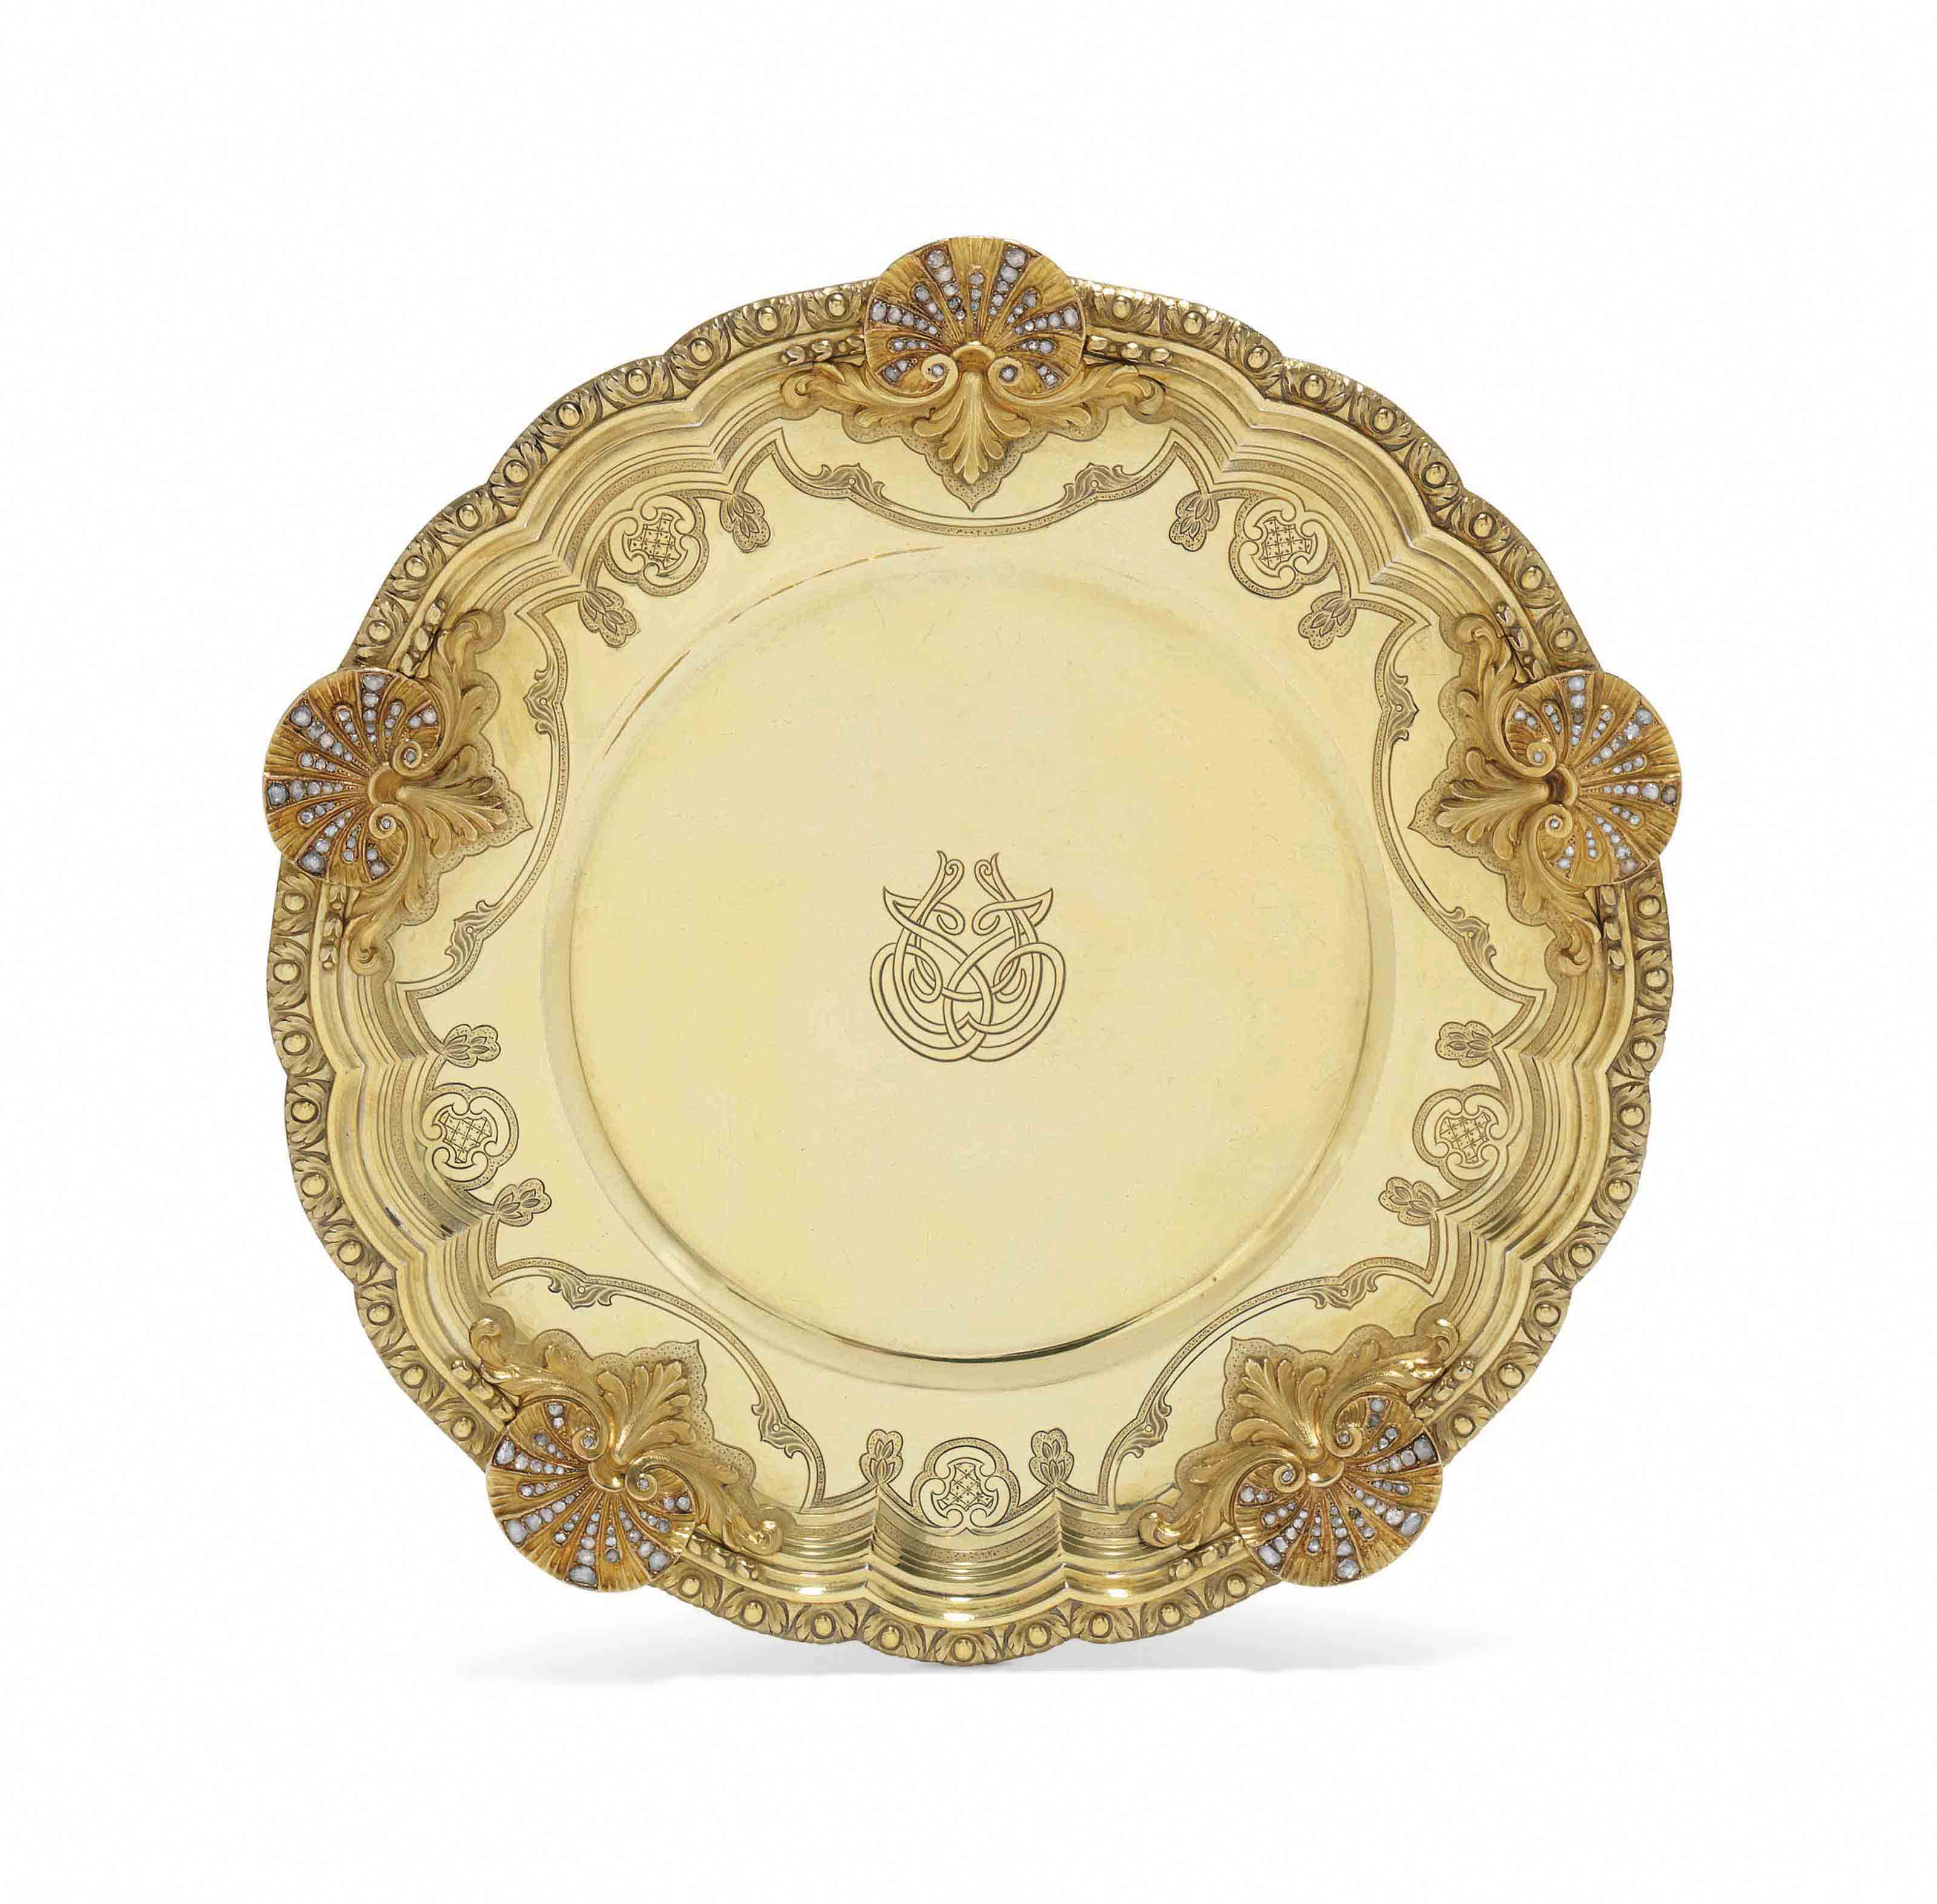 A FRENCH SILVER-GILT, GOLD AND DIAMOND-SET SECOND-COURSE DISH